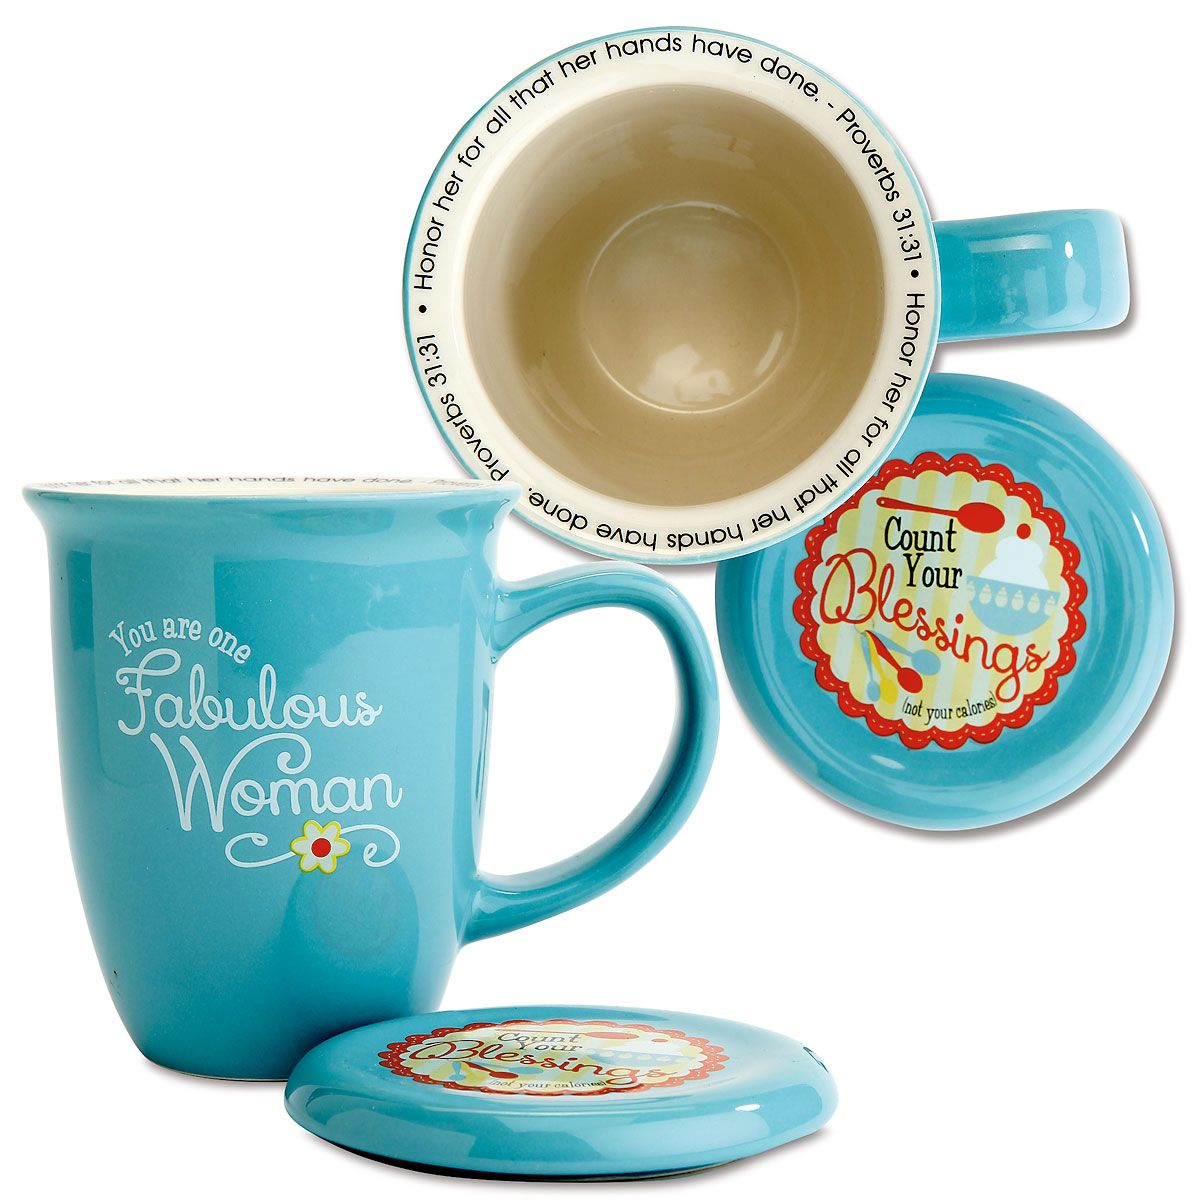 Fabulous Woman Covered Mug